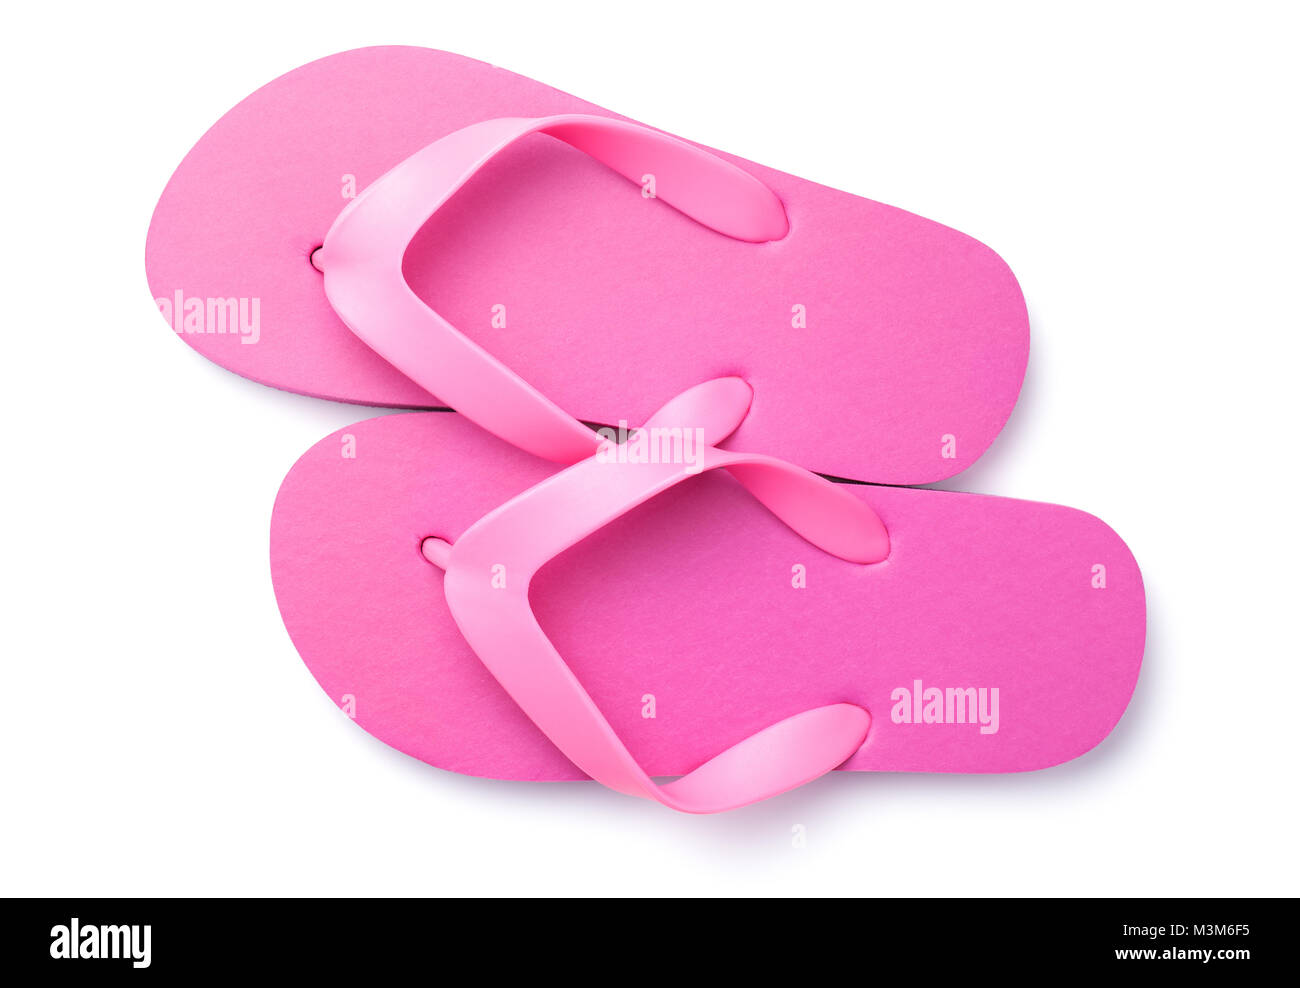 ec9cc41b9245 Summer flip flops isolated on white background. Top view Stock Photo ...